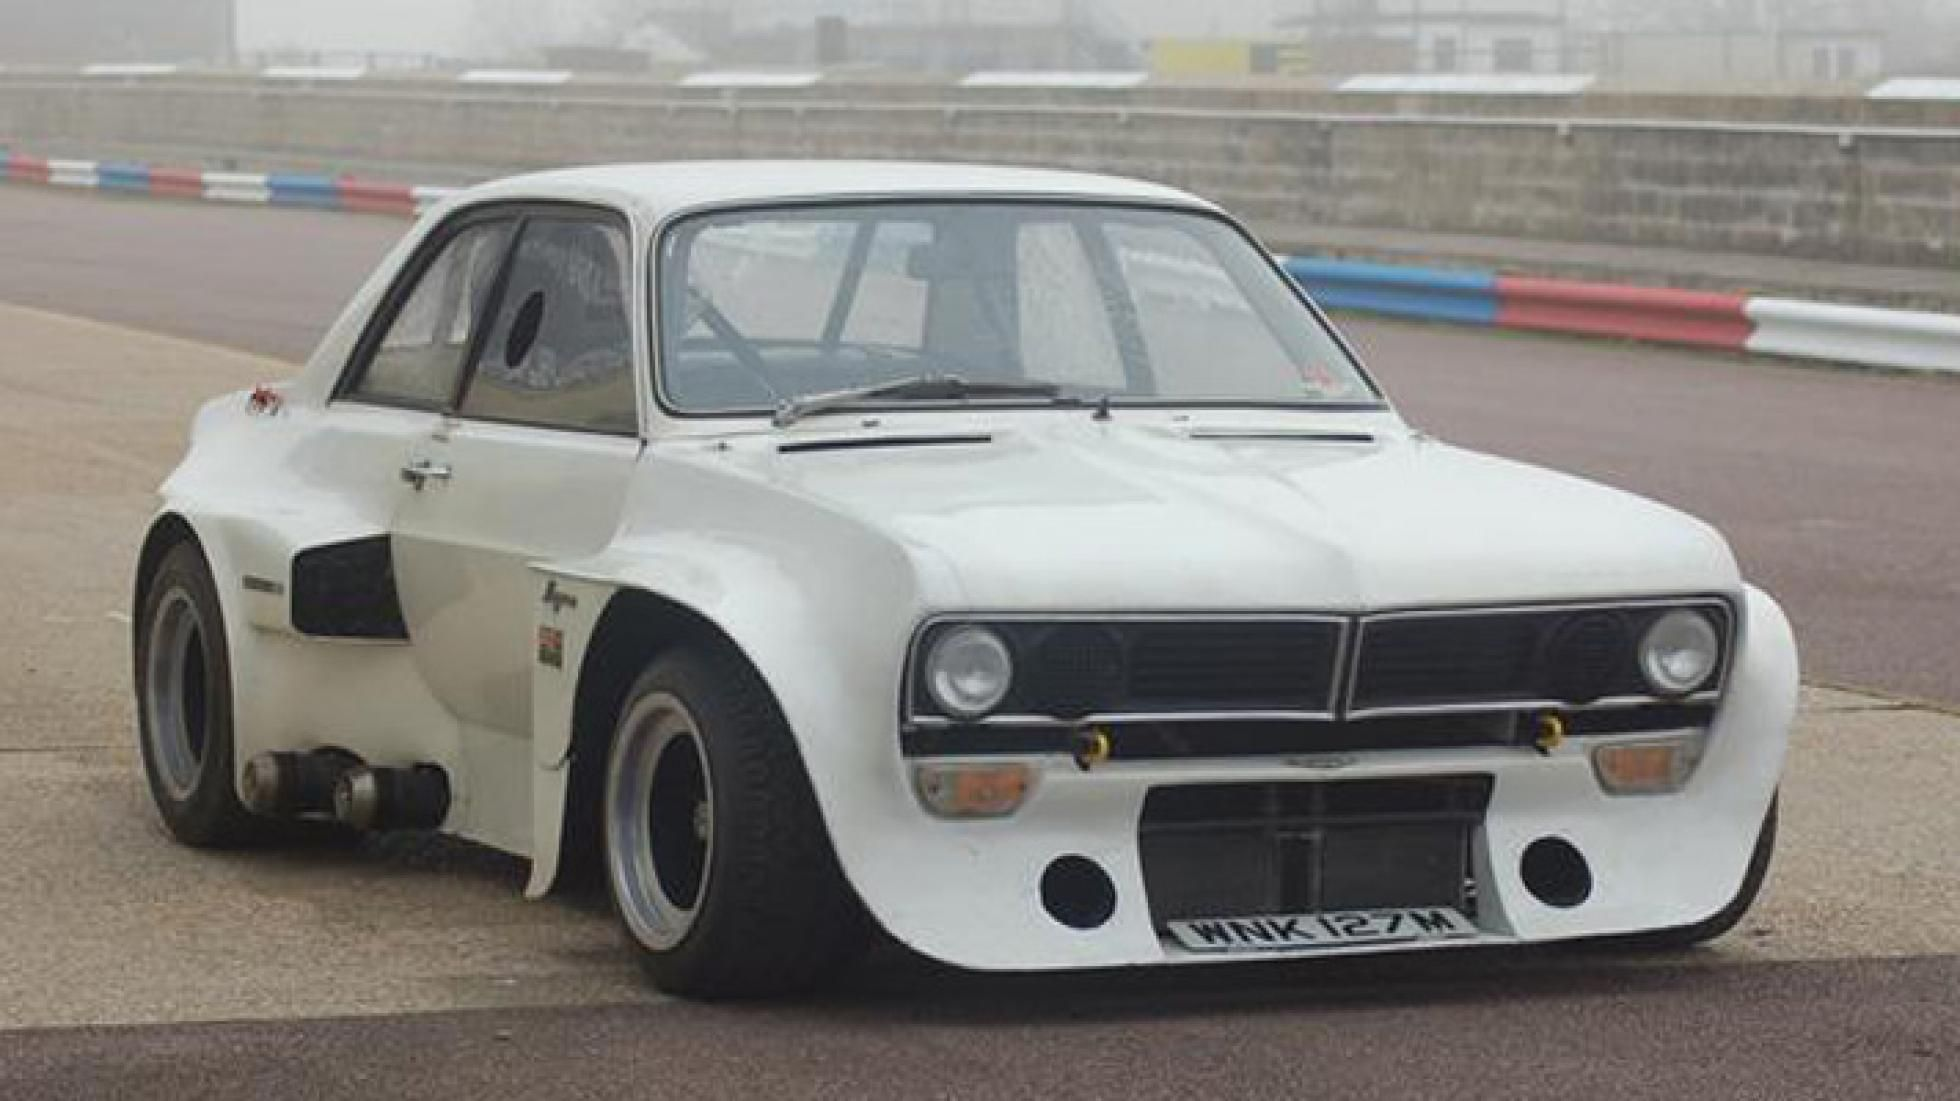 Vauxhall Magnum | Automobiles | Pinterest | Rally car, Cars and ...